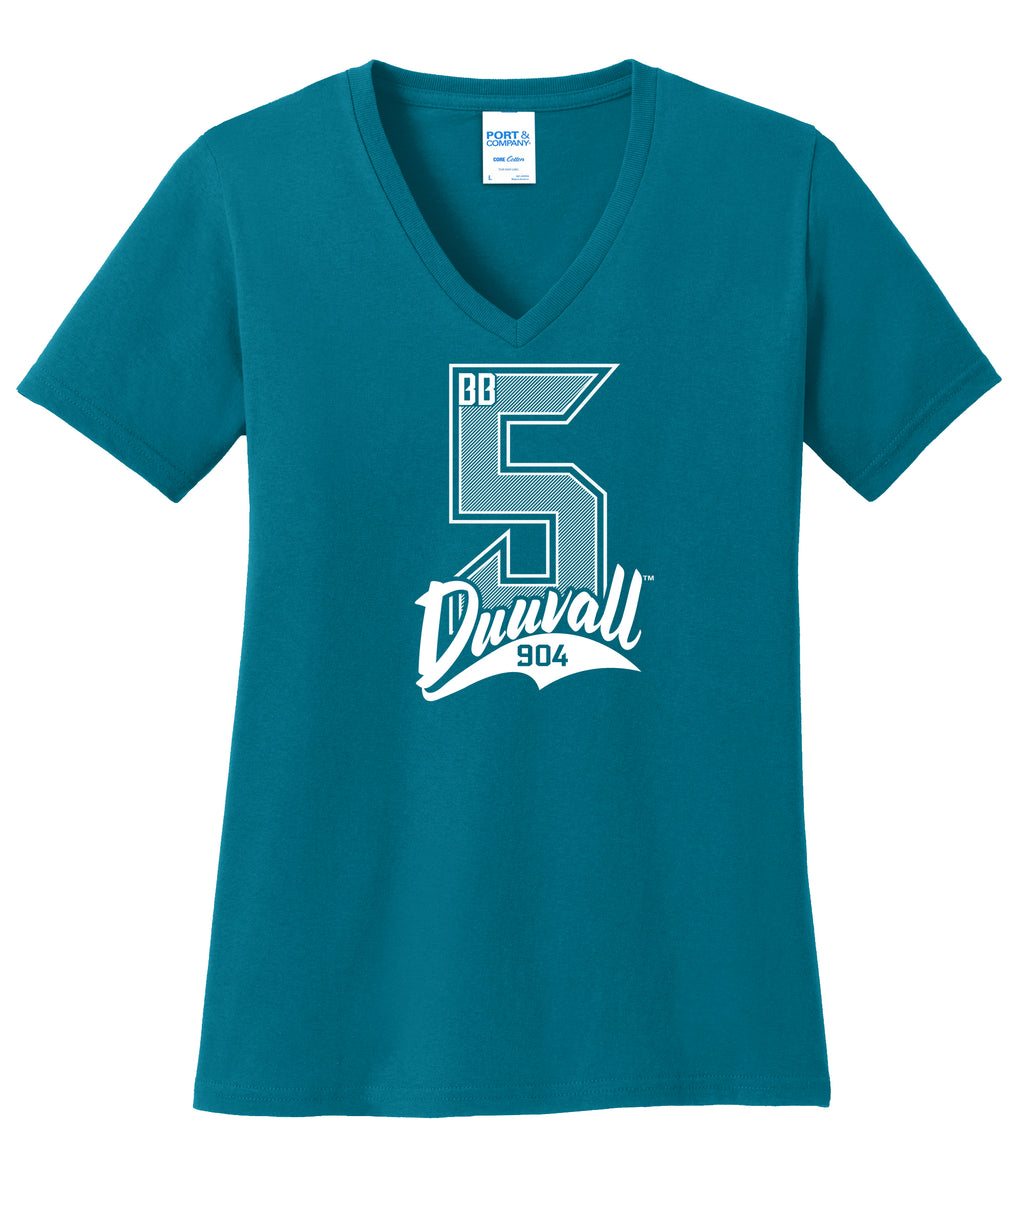 BB5 Team Color Teal Tee - Florida Native